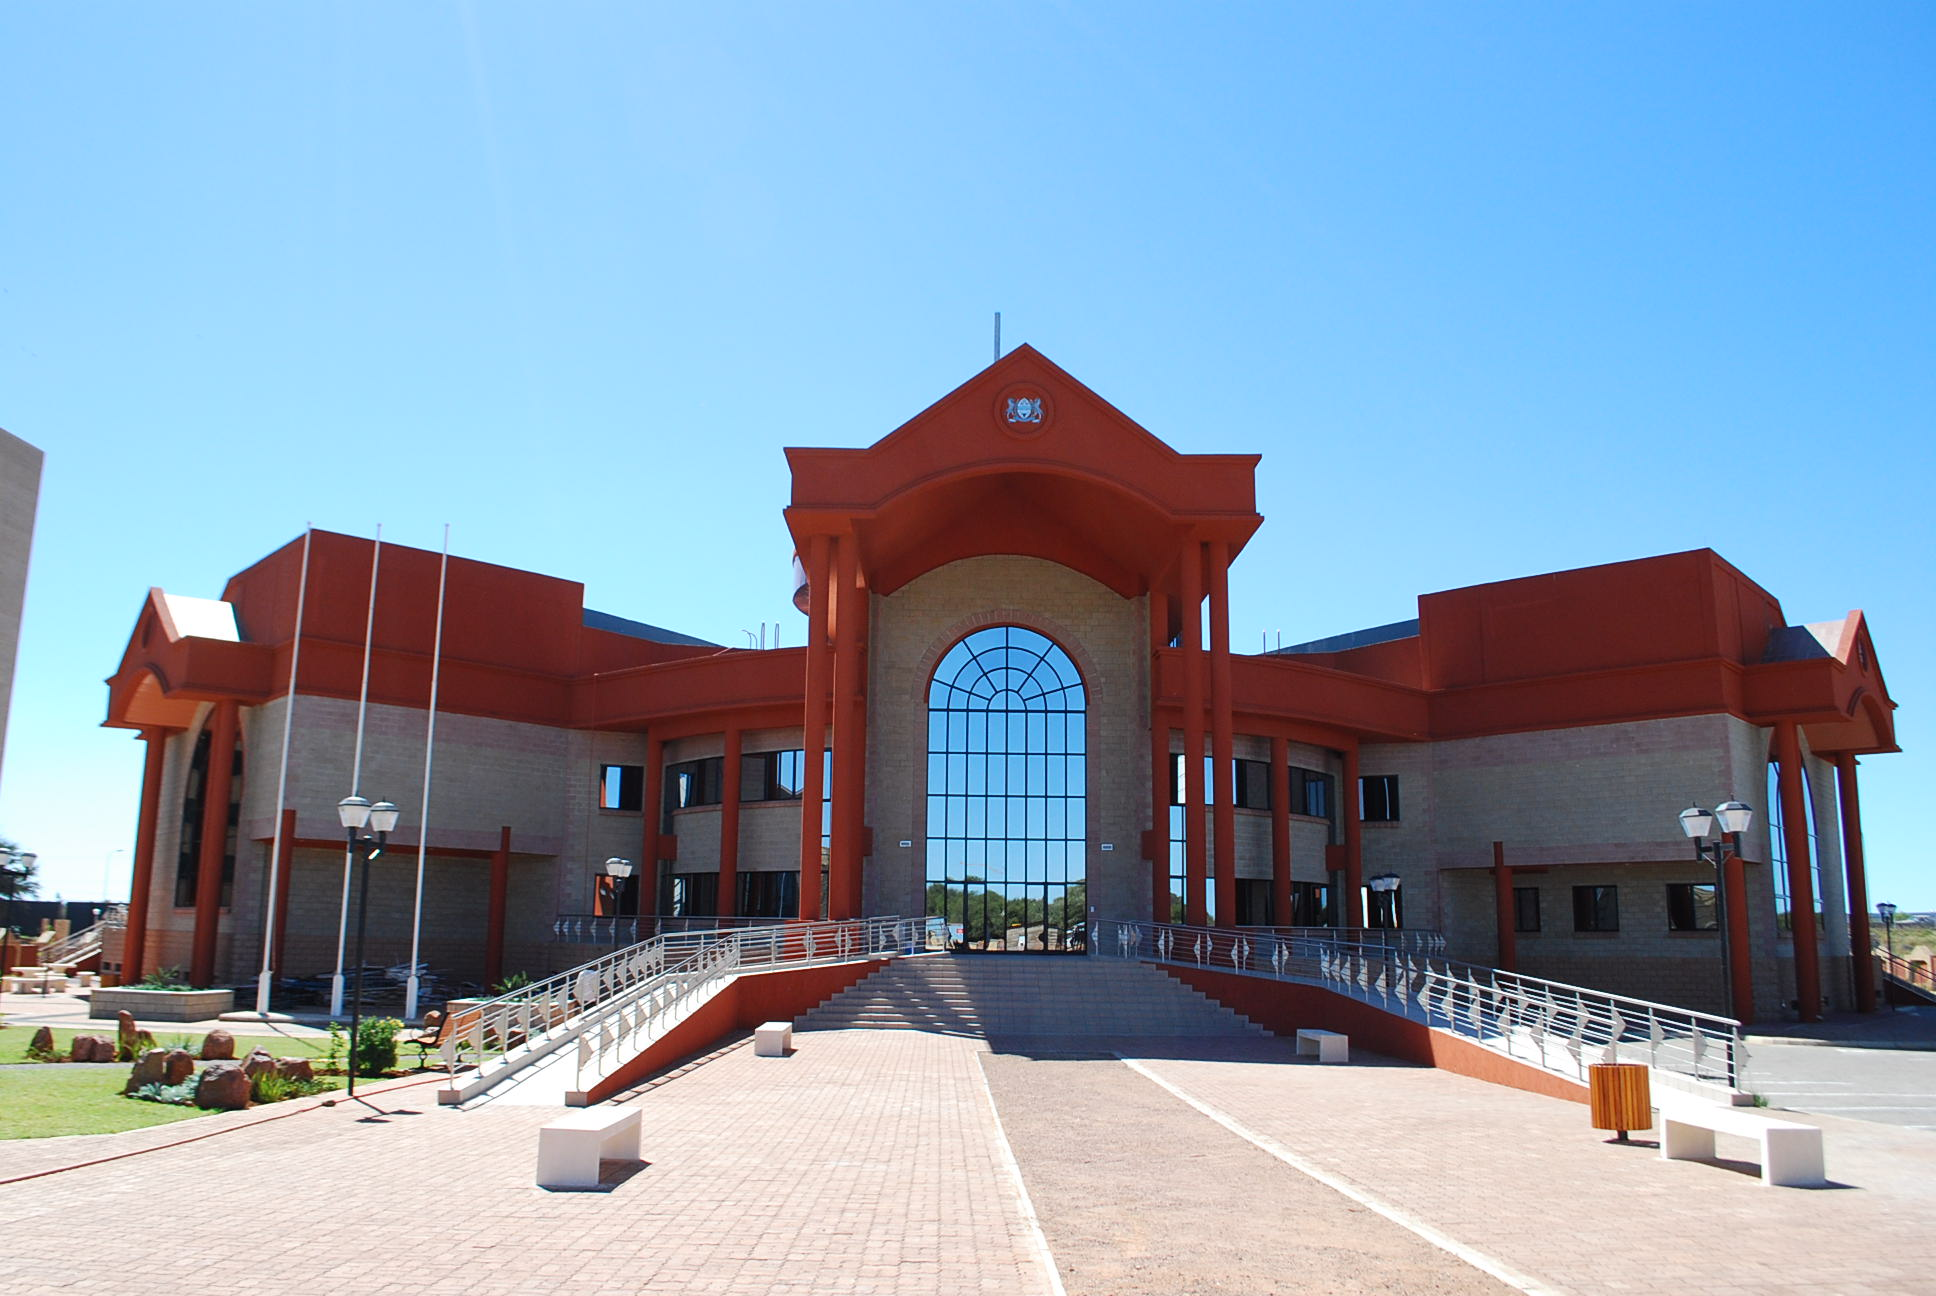 https://constructionreviewonline.com/2016/02/major-court-building-botswana-undergo-major-reconstruction/